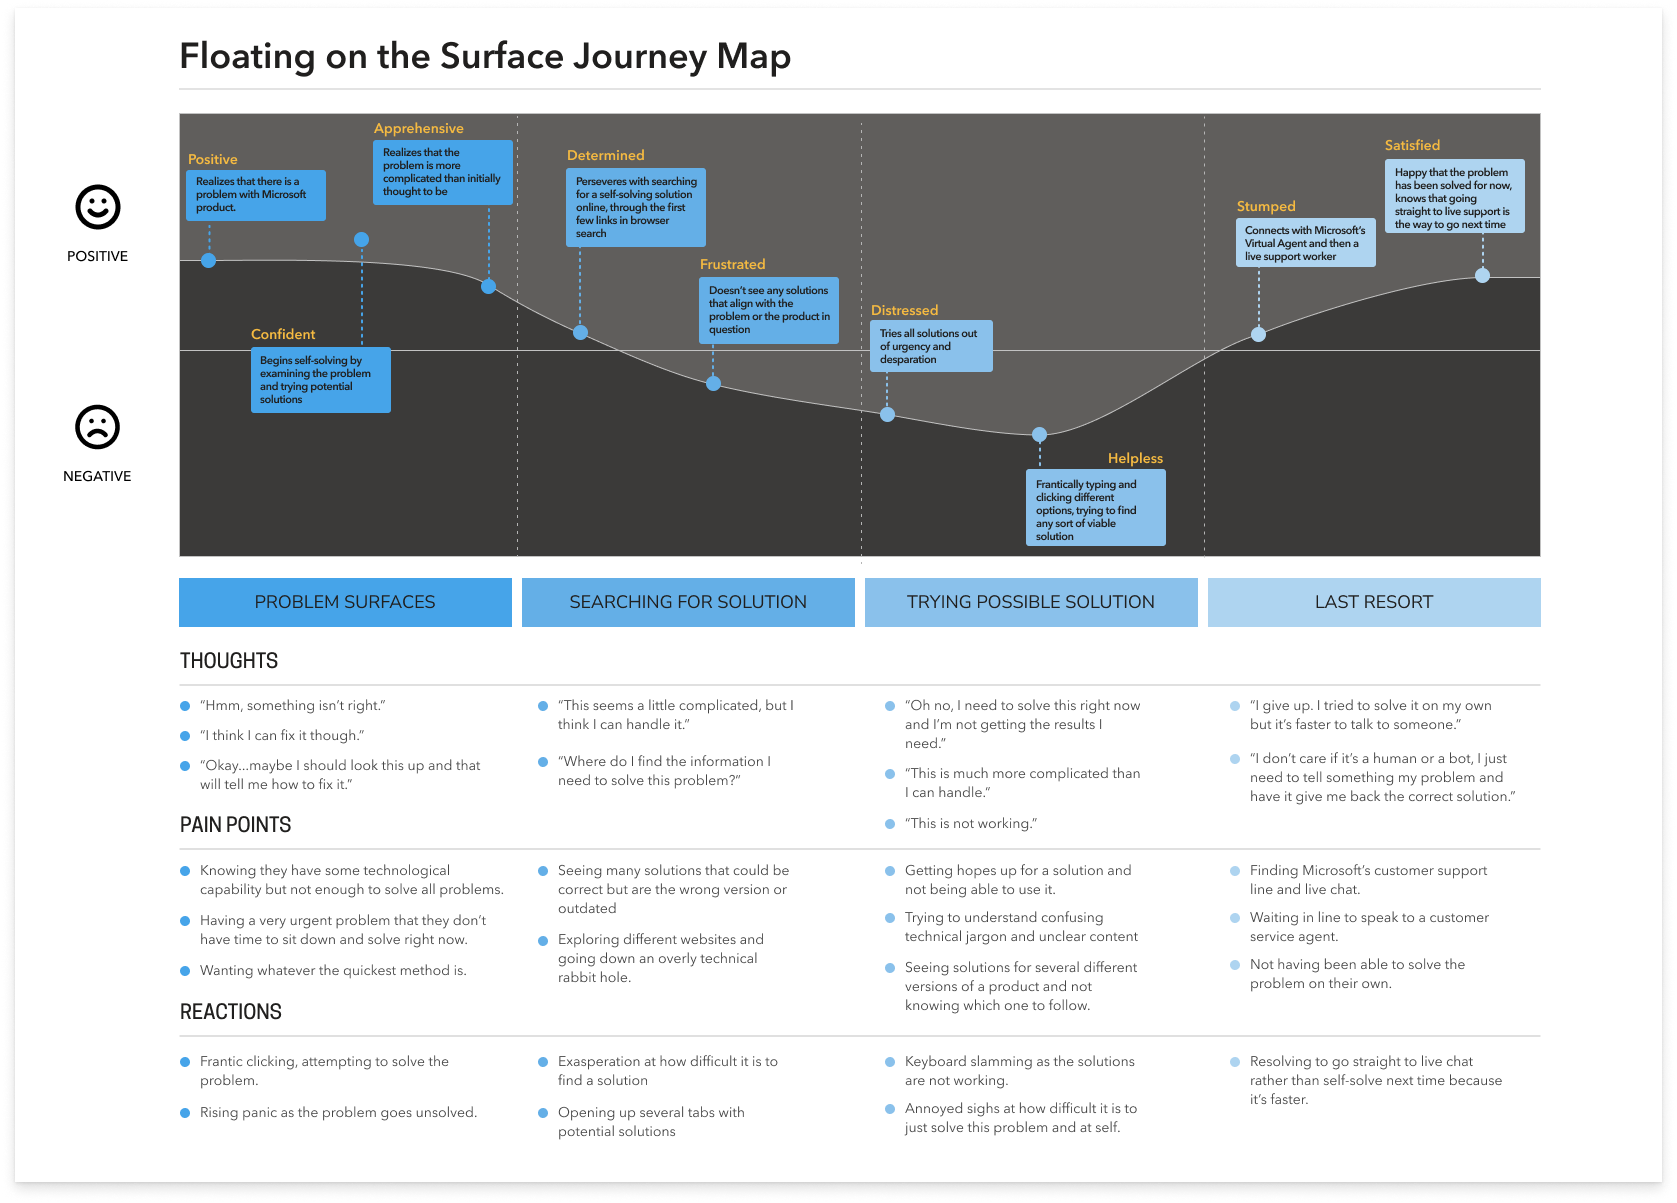 A graphical representation of the thoughts, pain points, reactions, ups and downs in the floating on the surface journey.